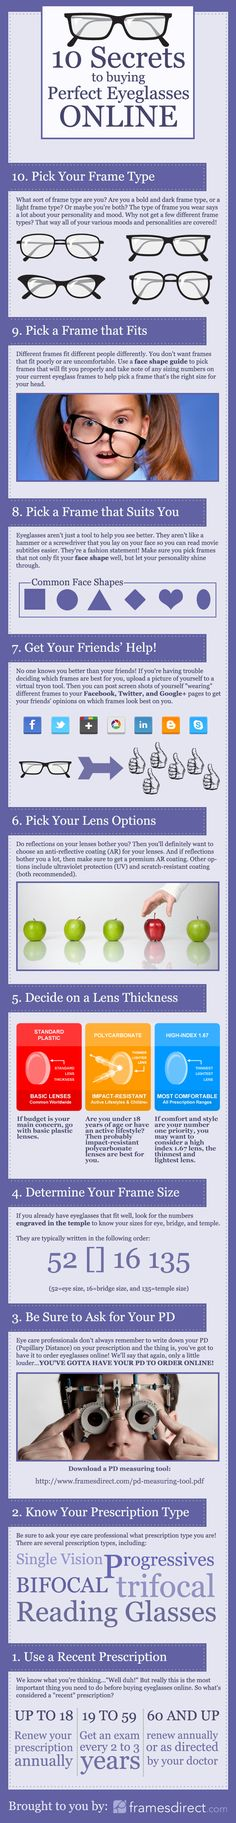 10 Secrets to Buying Perfect Eyeglasses Online Infographic Best Aviator Sunglasses, Aviator Glasses, Eye Glasses, Bifocal Reading Glasses, Computer Glasses, Men Eyeglasses, For Your Eyes Only, Glasses Online, Good To Know